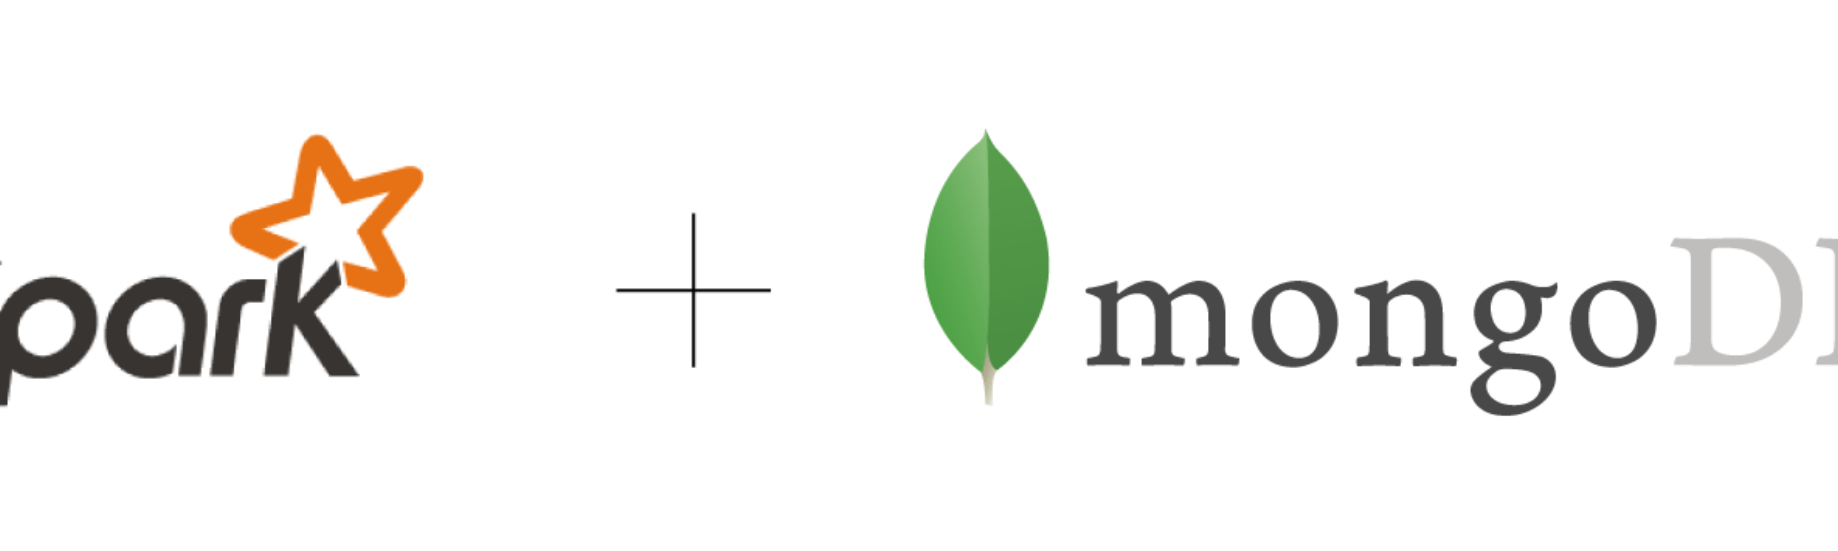 Connect Apache Spark to your MongoDB database using the mongo-spark